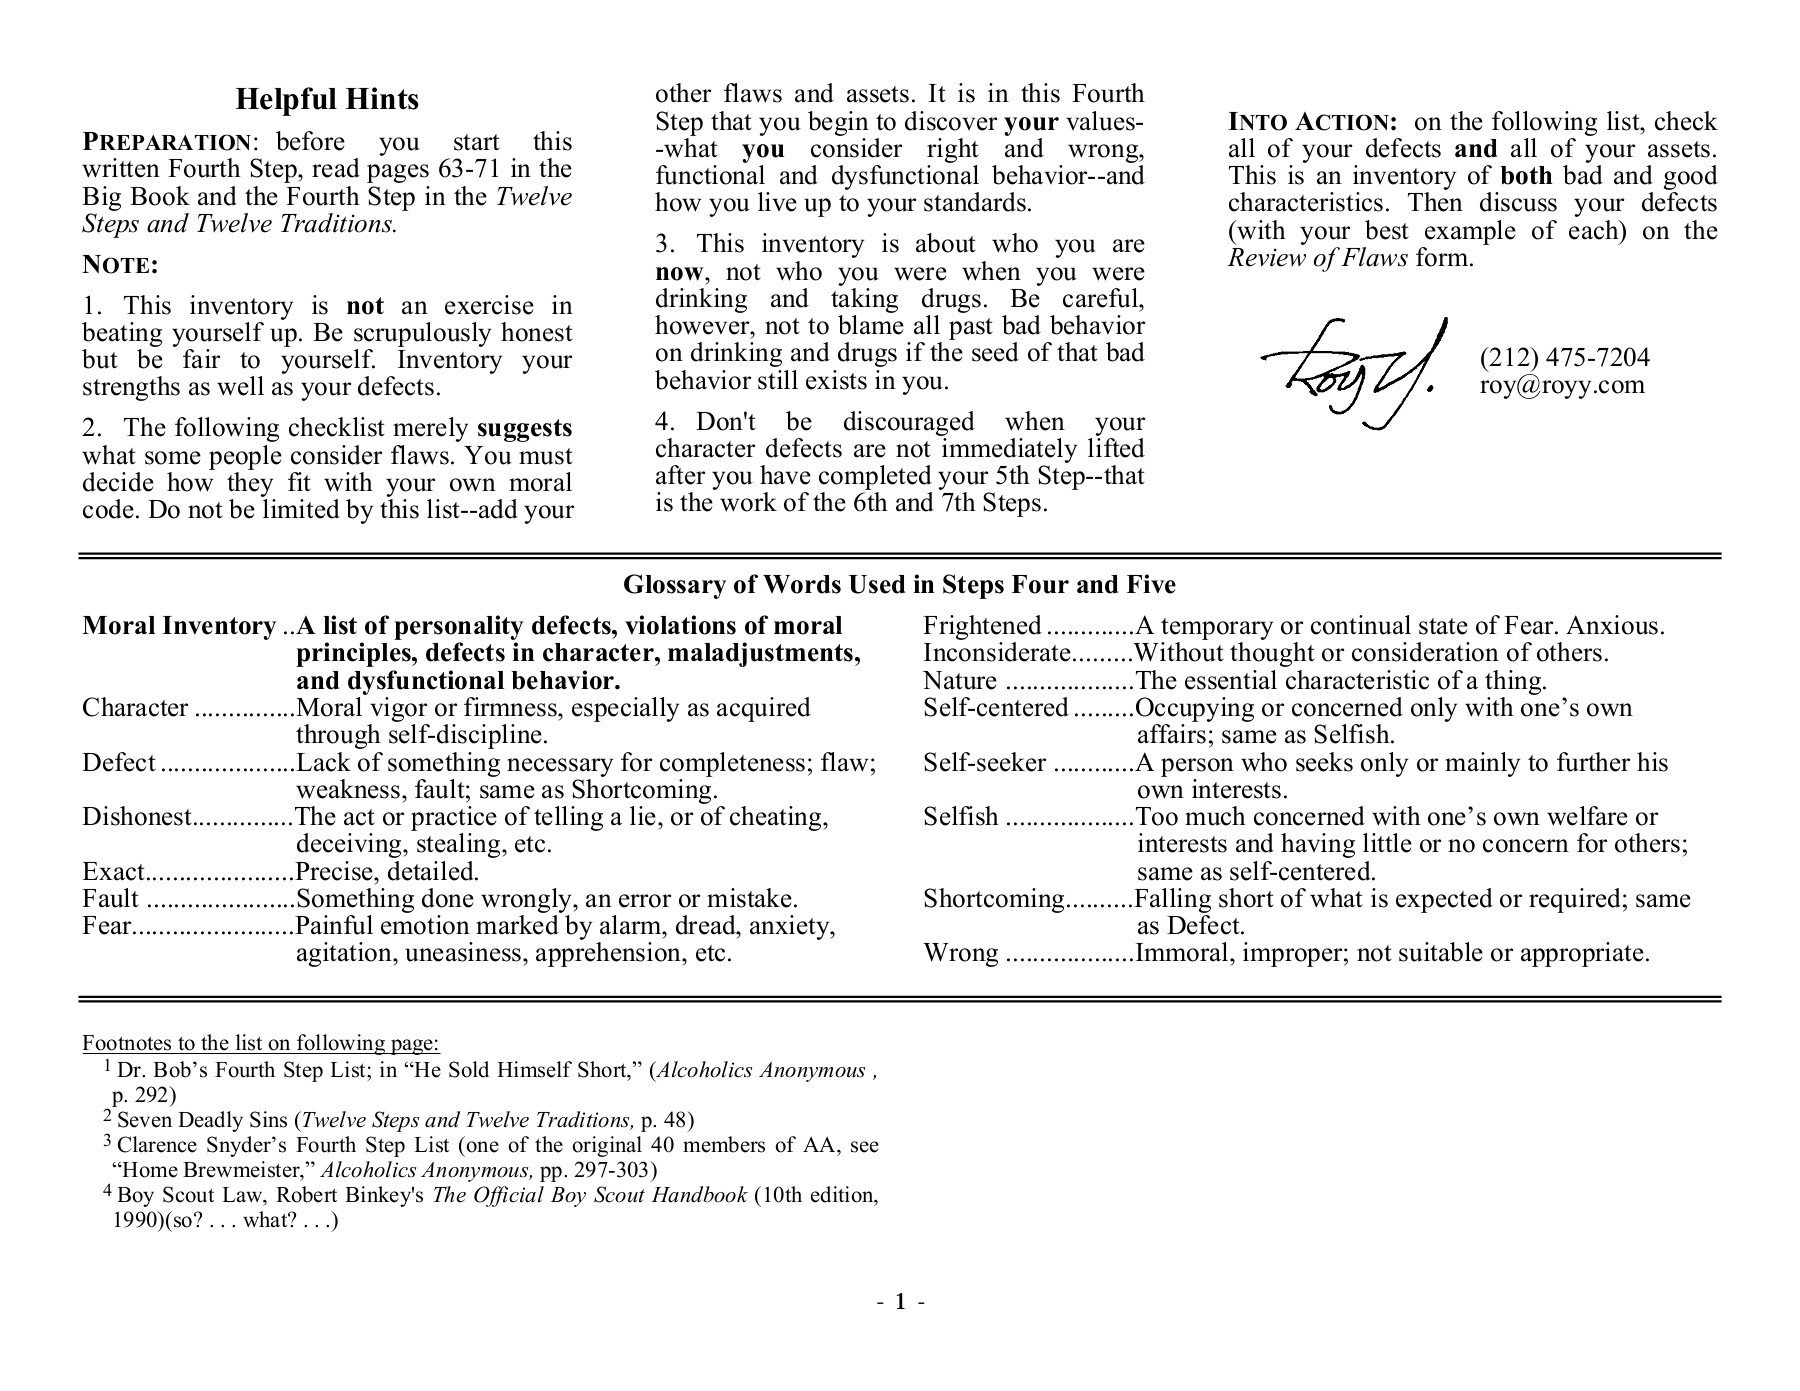 Fourth Step Invento Ry  12  Steps  Recovery Pages 1  15  Text As Well As Step 5 Aa Worksheet